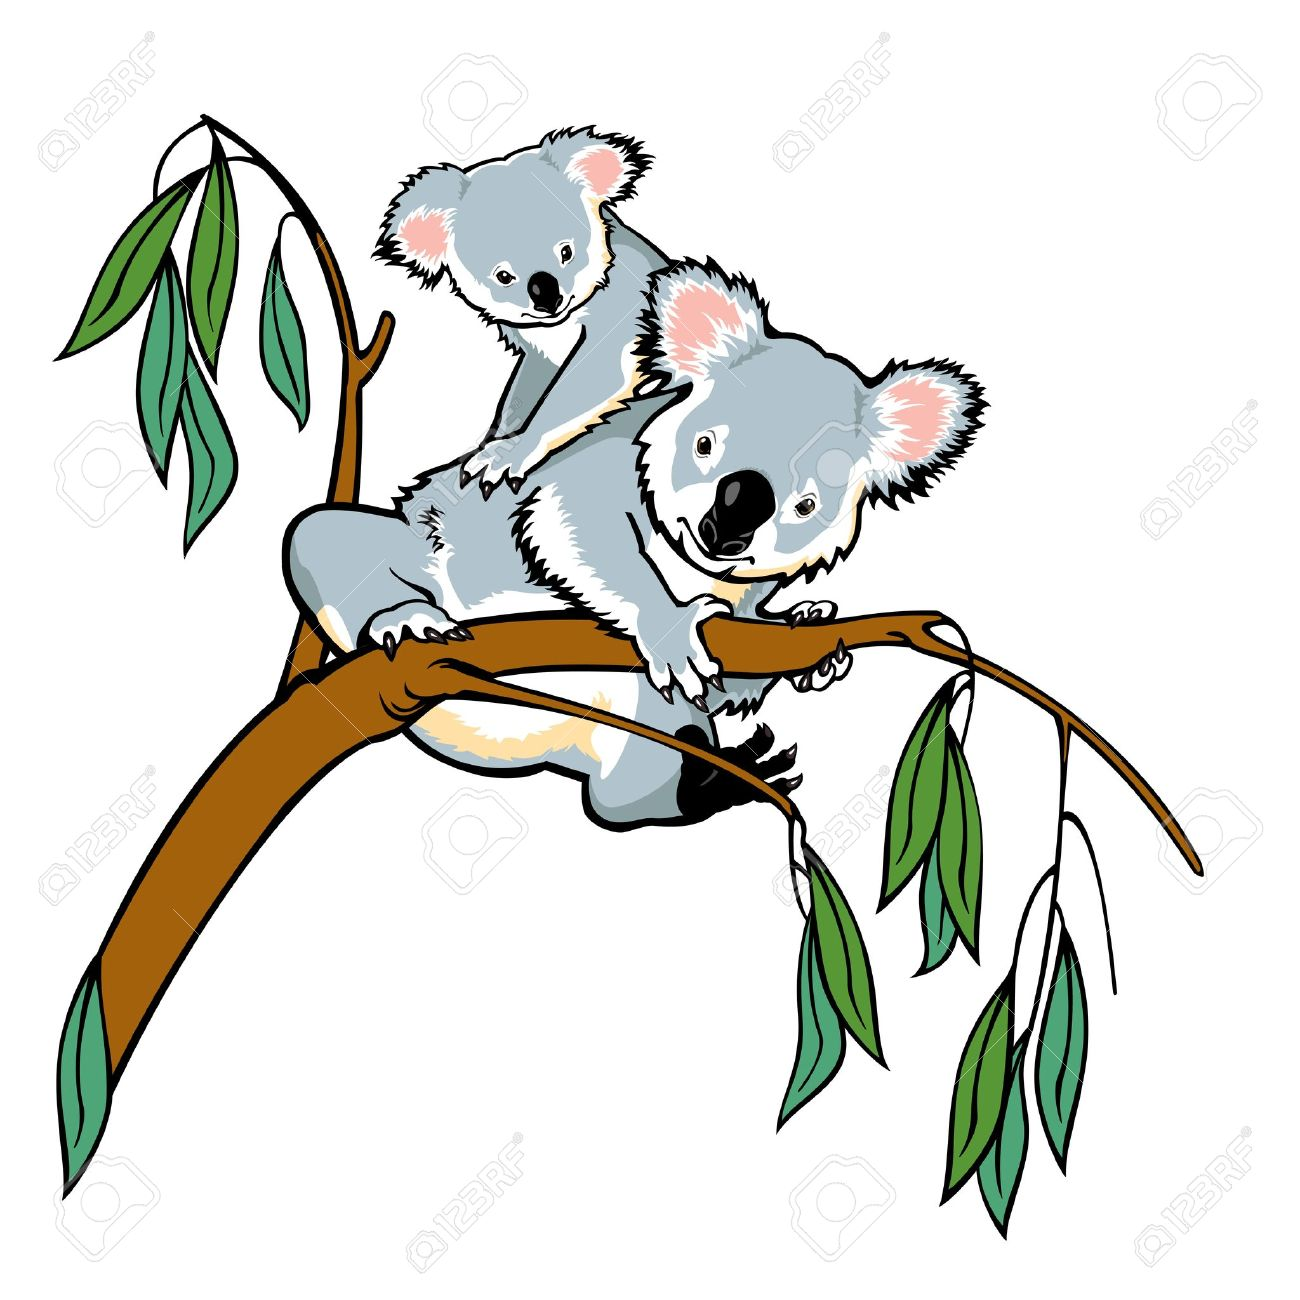 koala with joey climbing eucalyptus tree picture isolated on rh 123rf com koala clipart cute koala clip art free